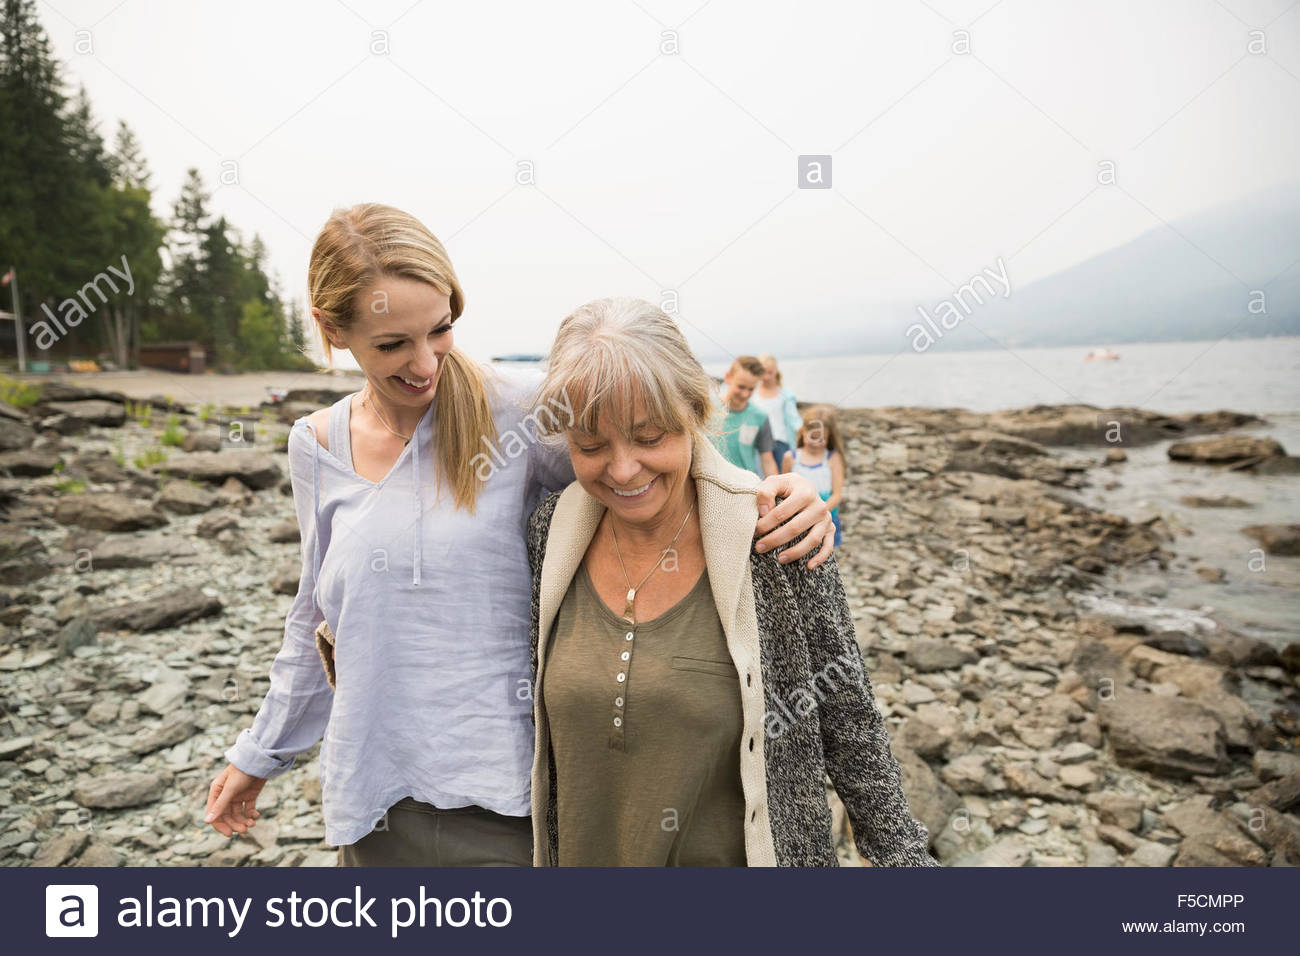 Mother and daughter walking along craggy lakeside - Stock Image